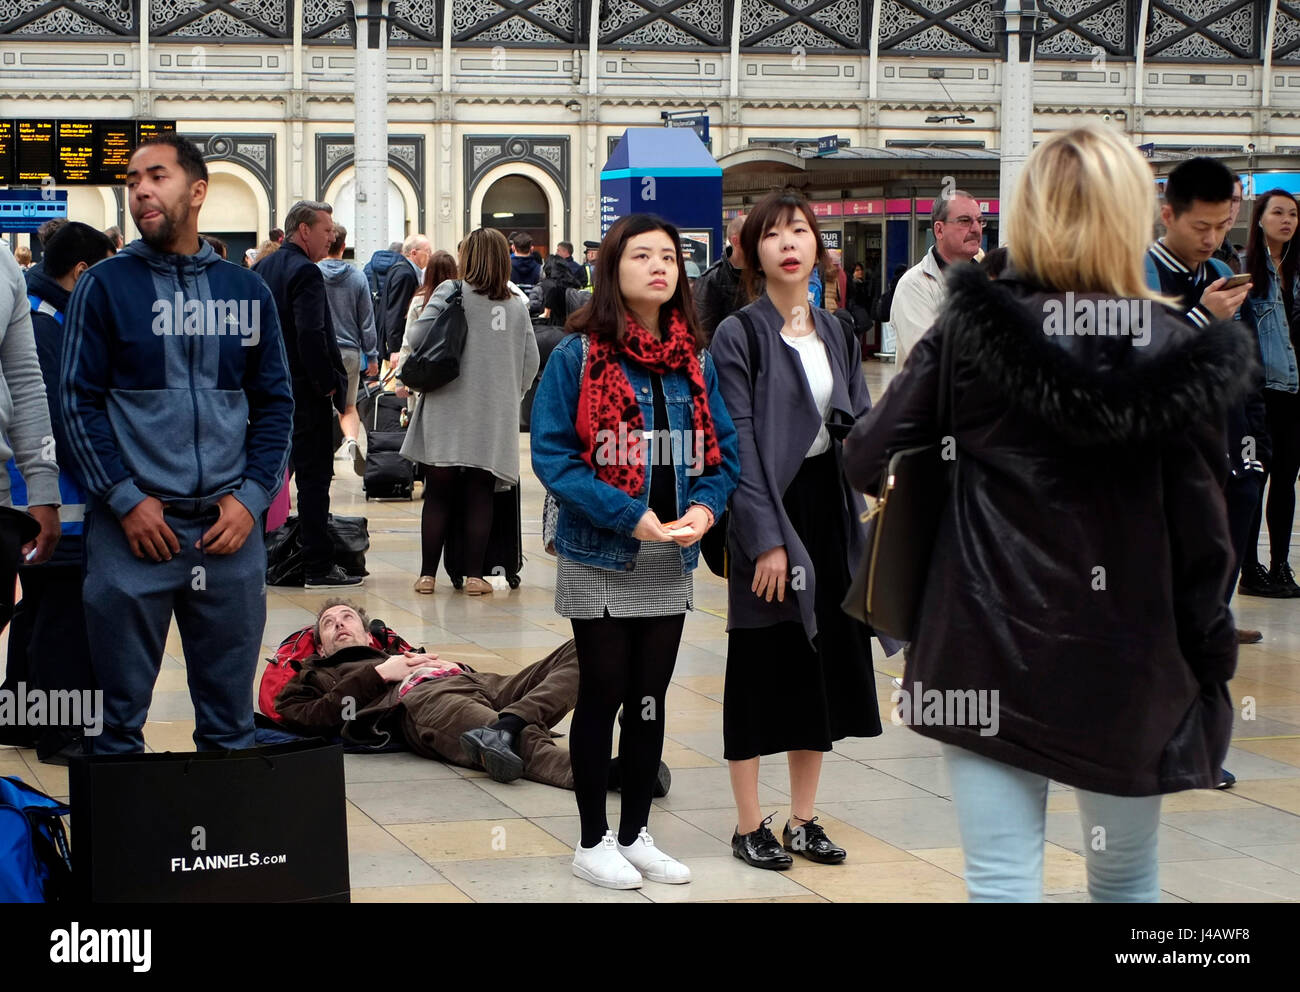 A man lays on the ground in the concourse of London Paddington station, in London, Britain May 1, 2017. © John - Stock Image